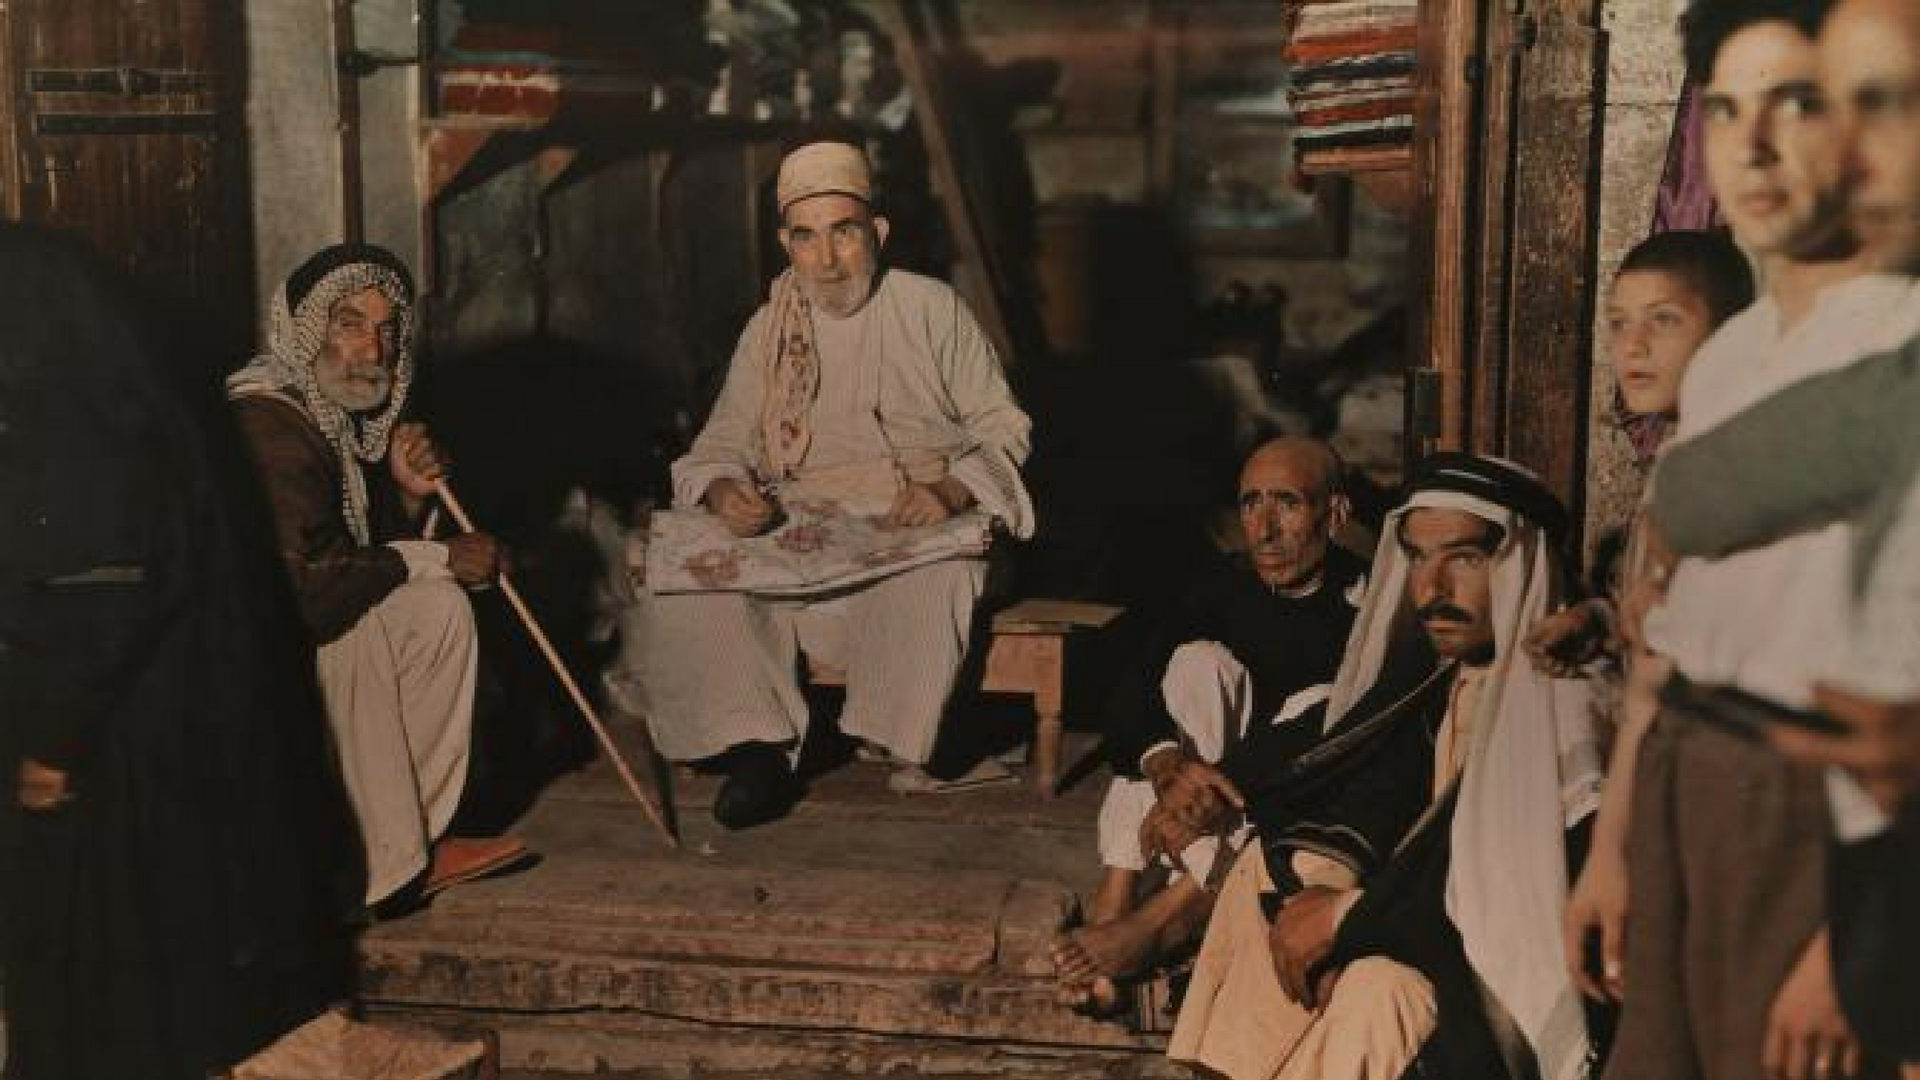 20th Century Syria in Pictures